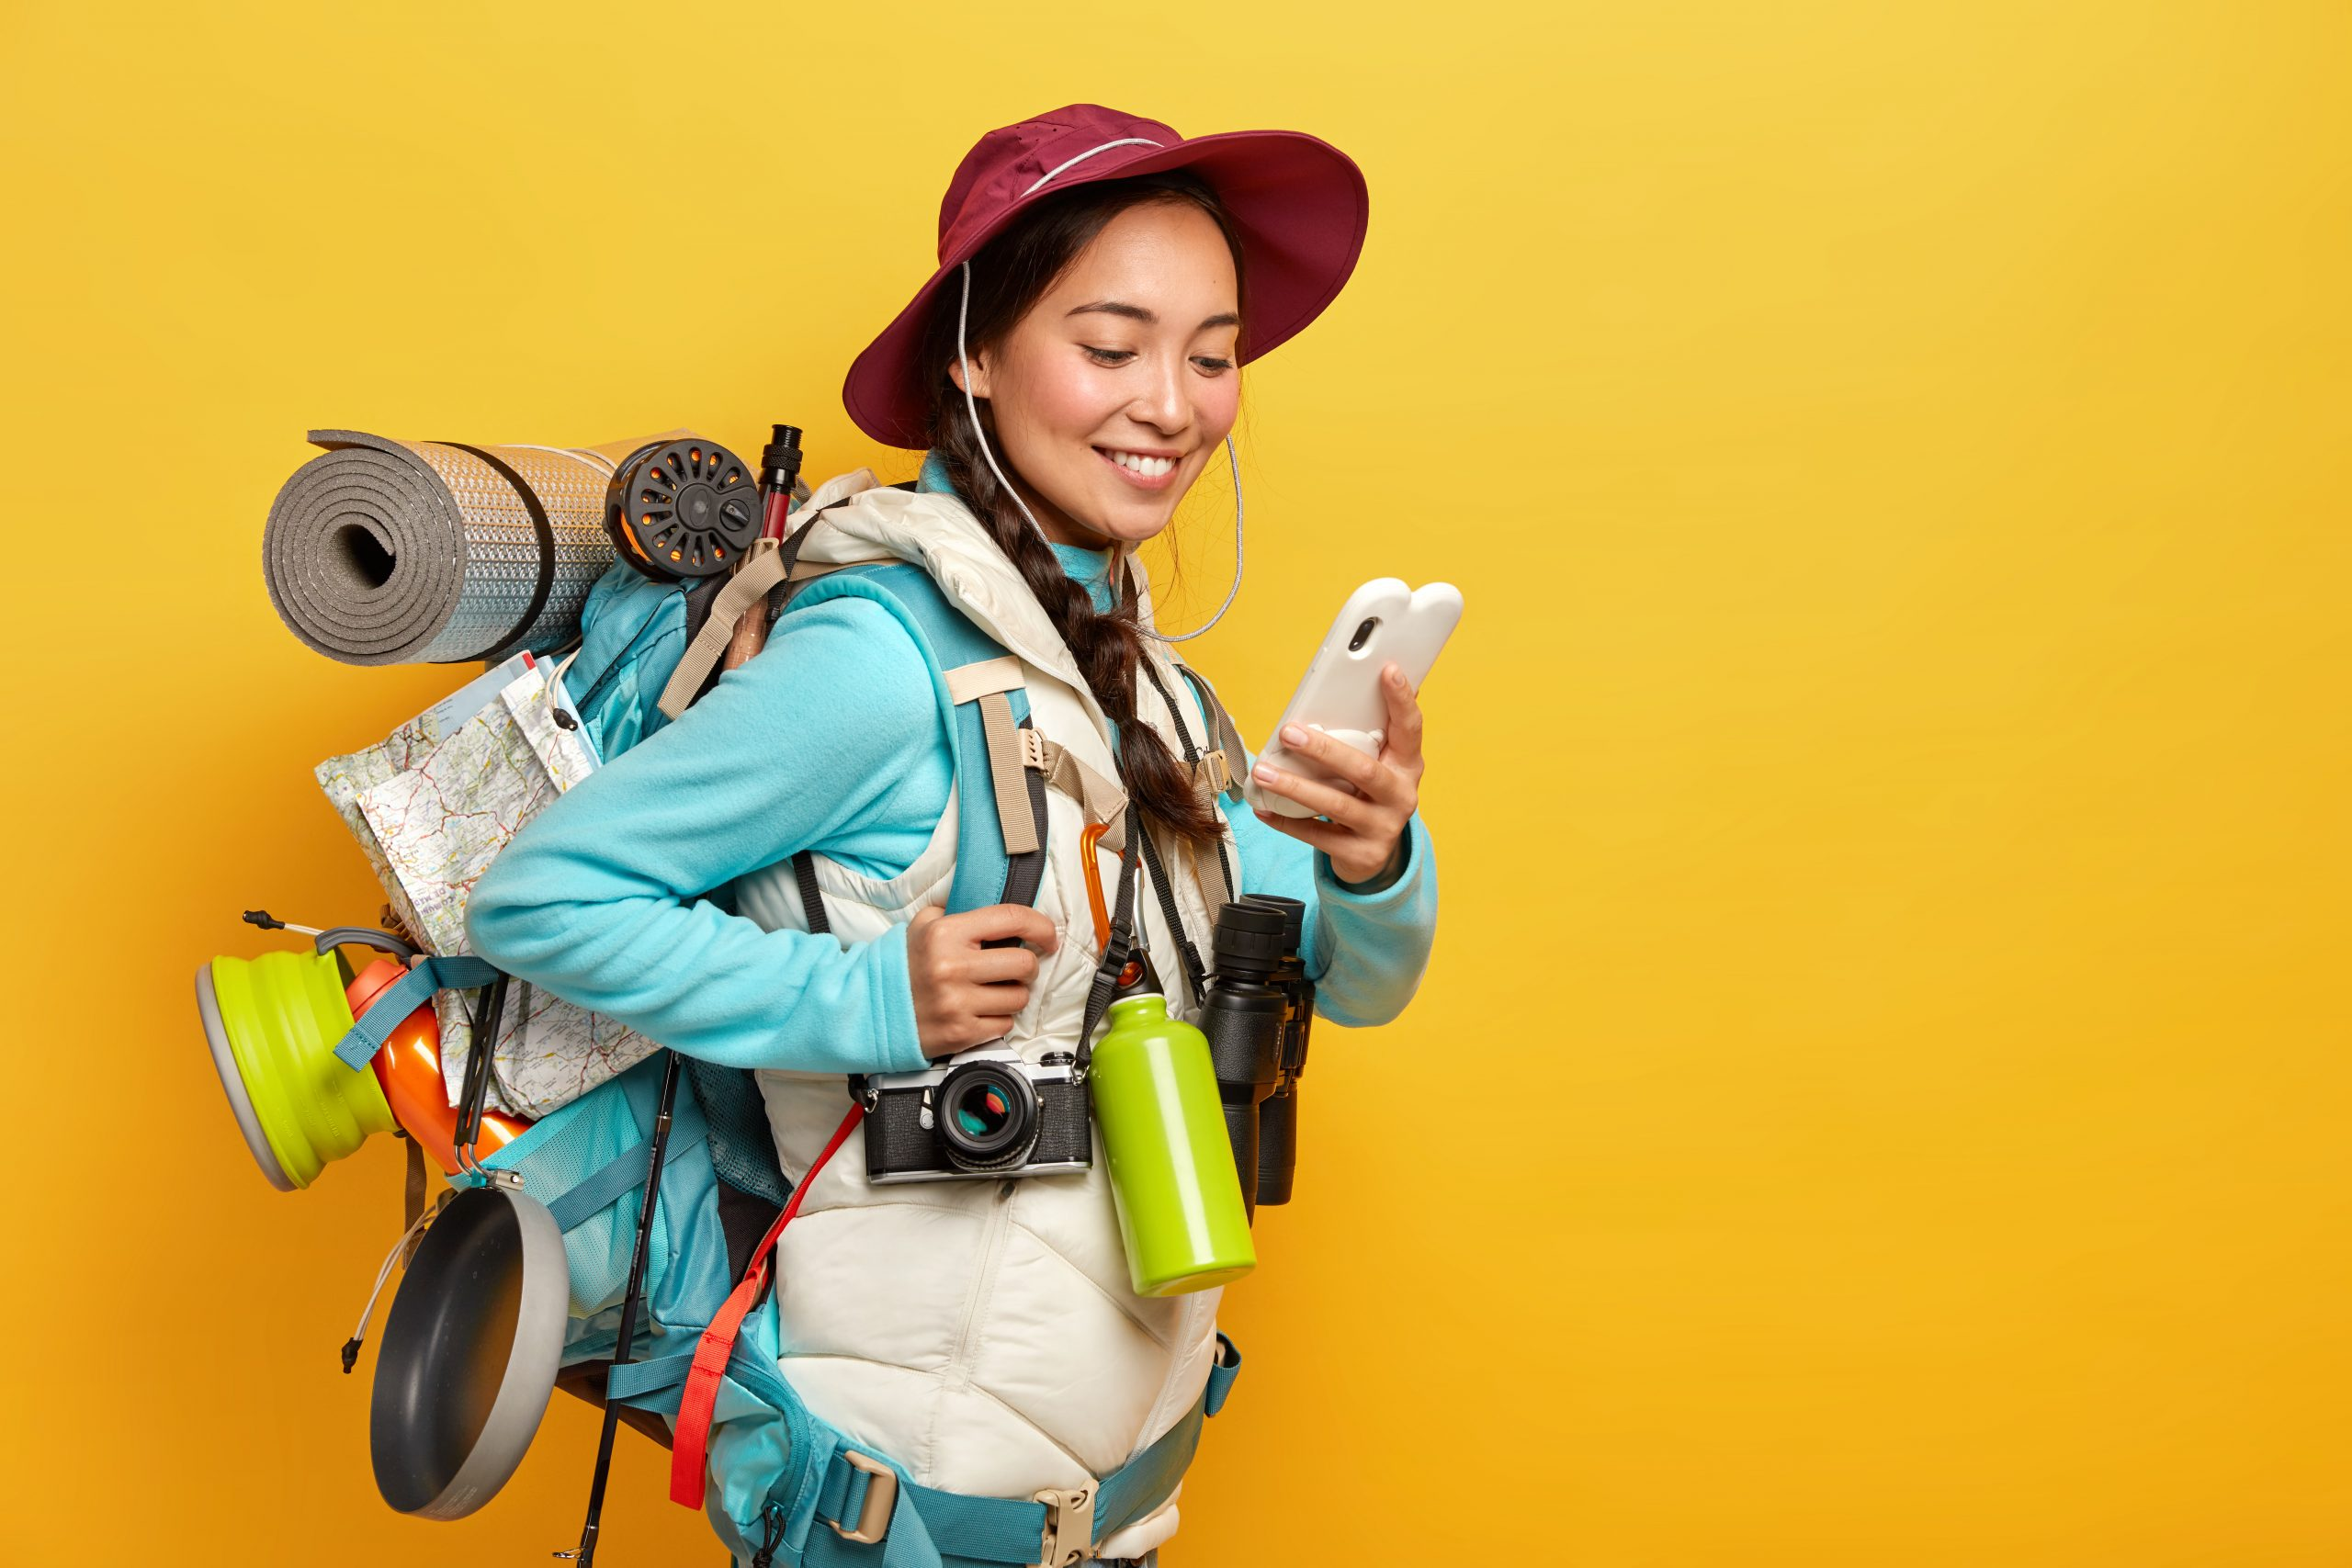 positive-pretty-asian-tourist-uses-modern-gadget-navigating-dressed-hat-jumper-with-jacket-uses-binoculars-retro-camera-karemat-during-trip-stands-against-yellow-wall-scaled.jpg